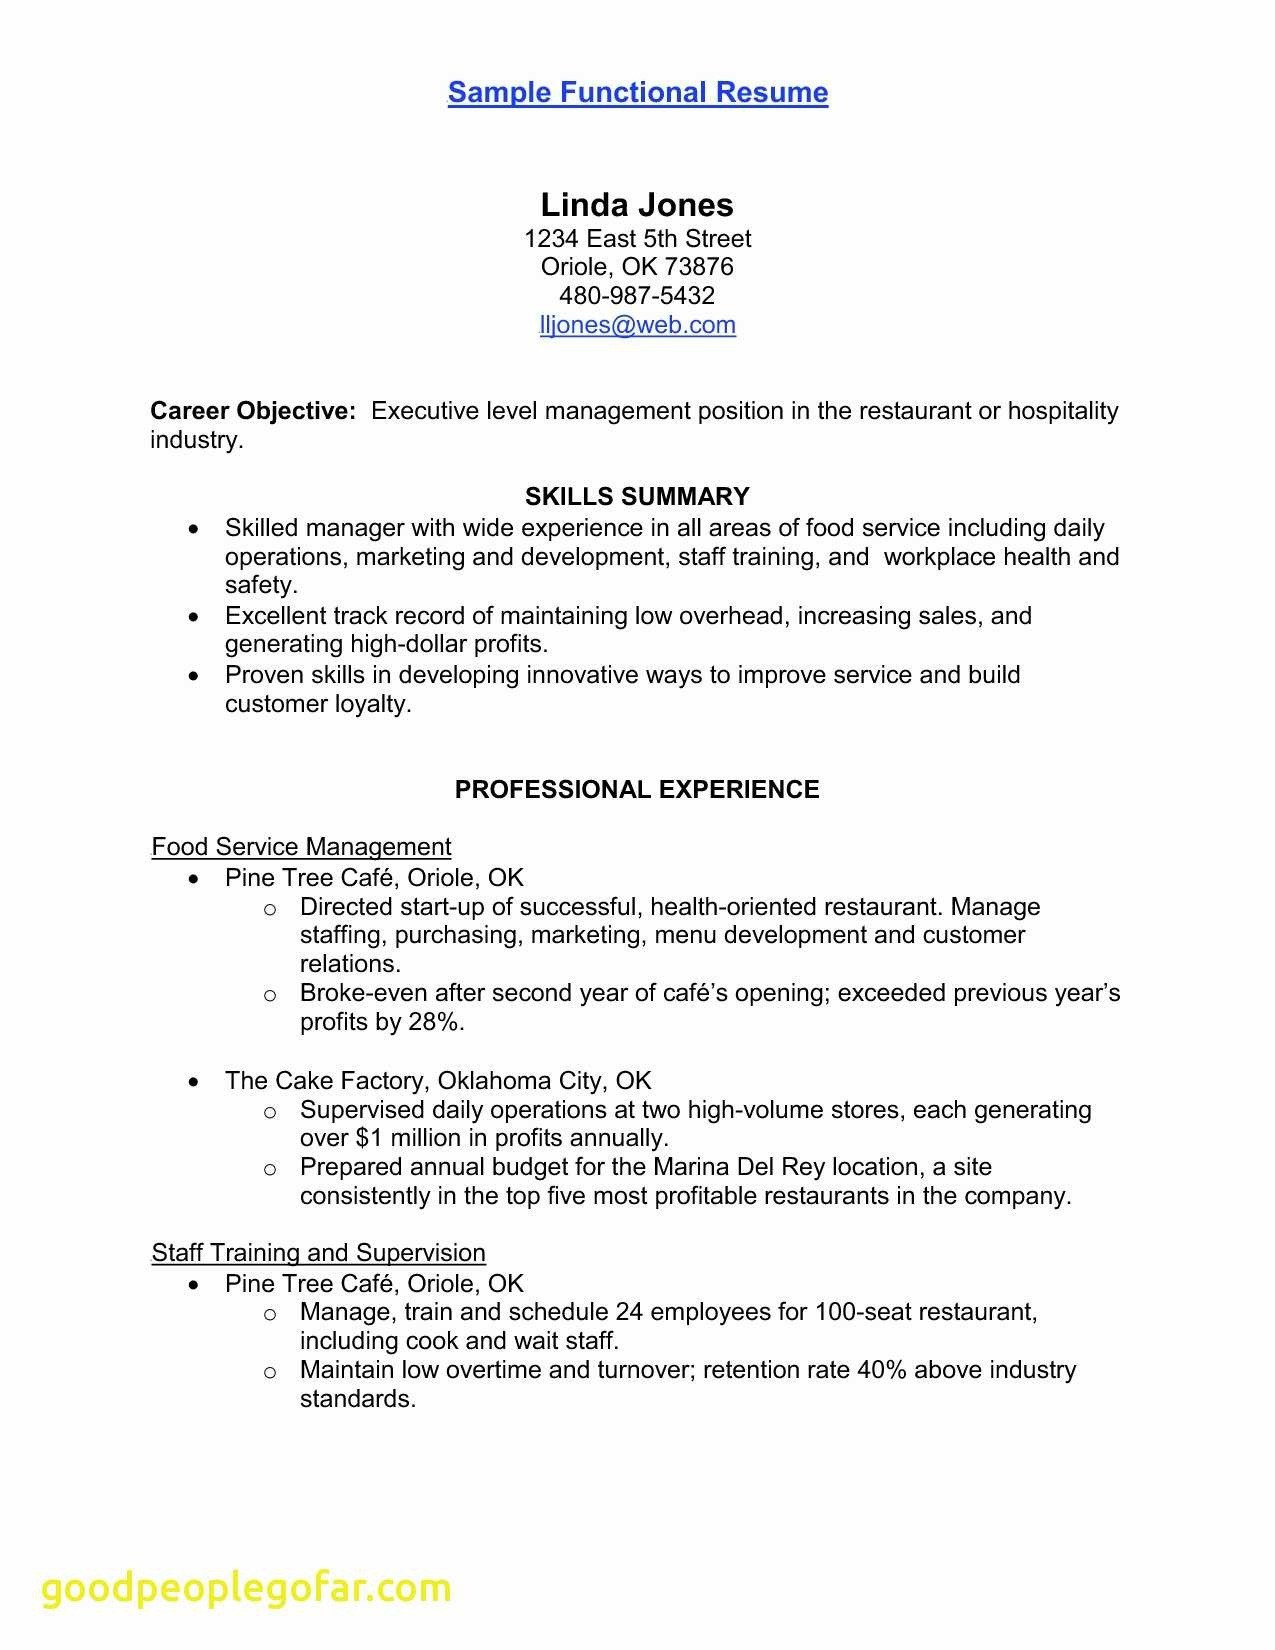 Entry Level Electrical Engineer Resume - Electrical Engineer Resume Ressume Template Lovely Type Resume